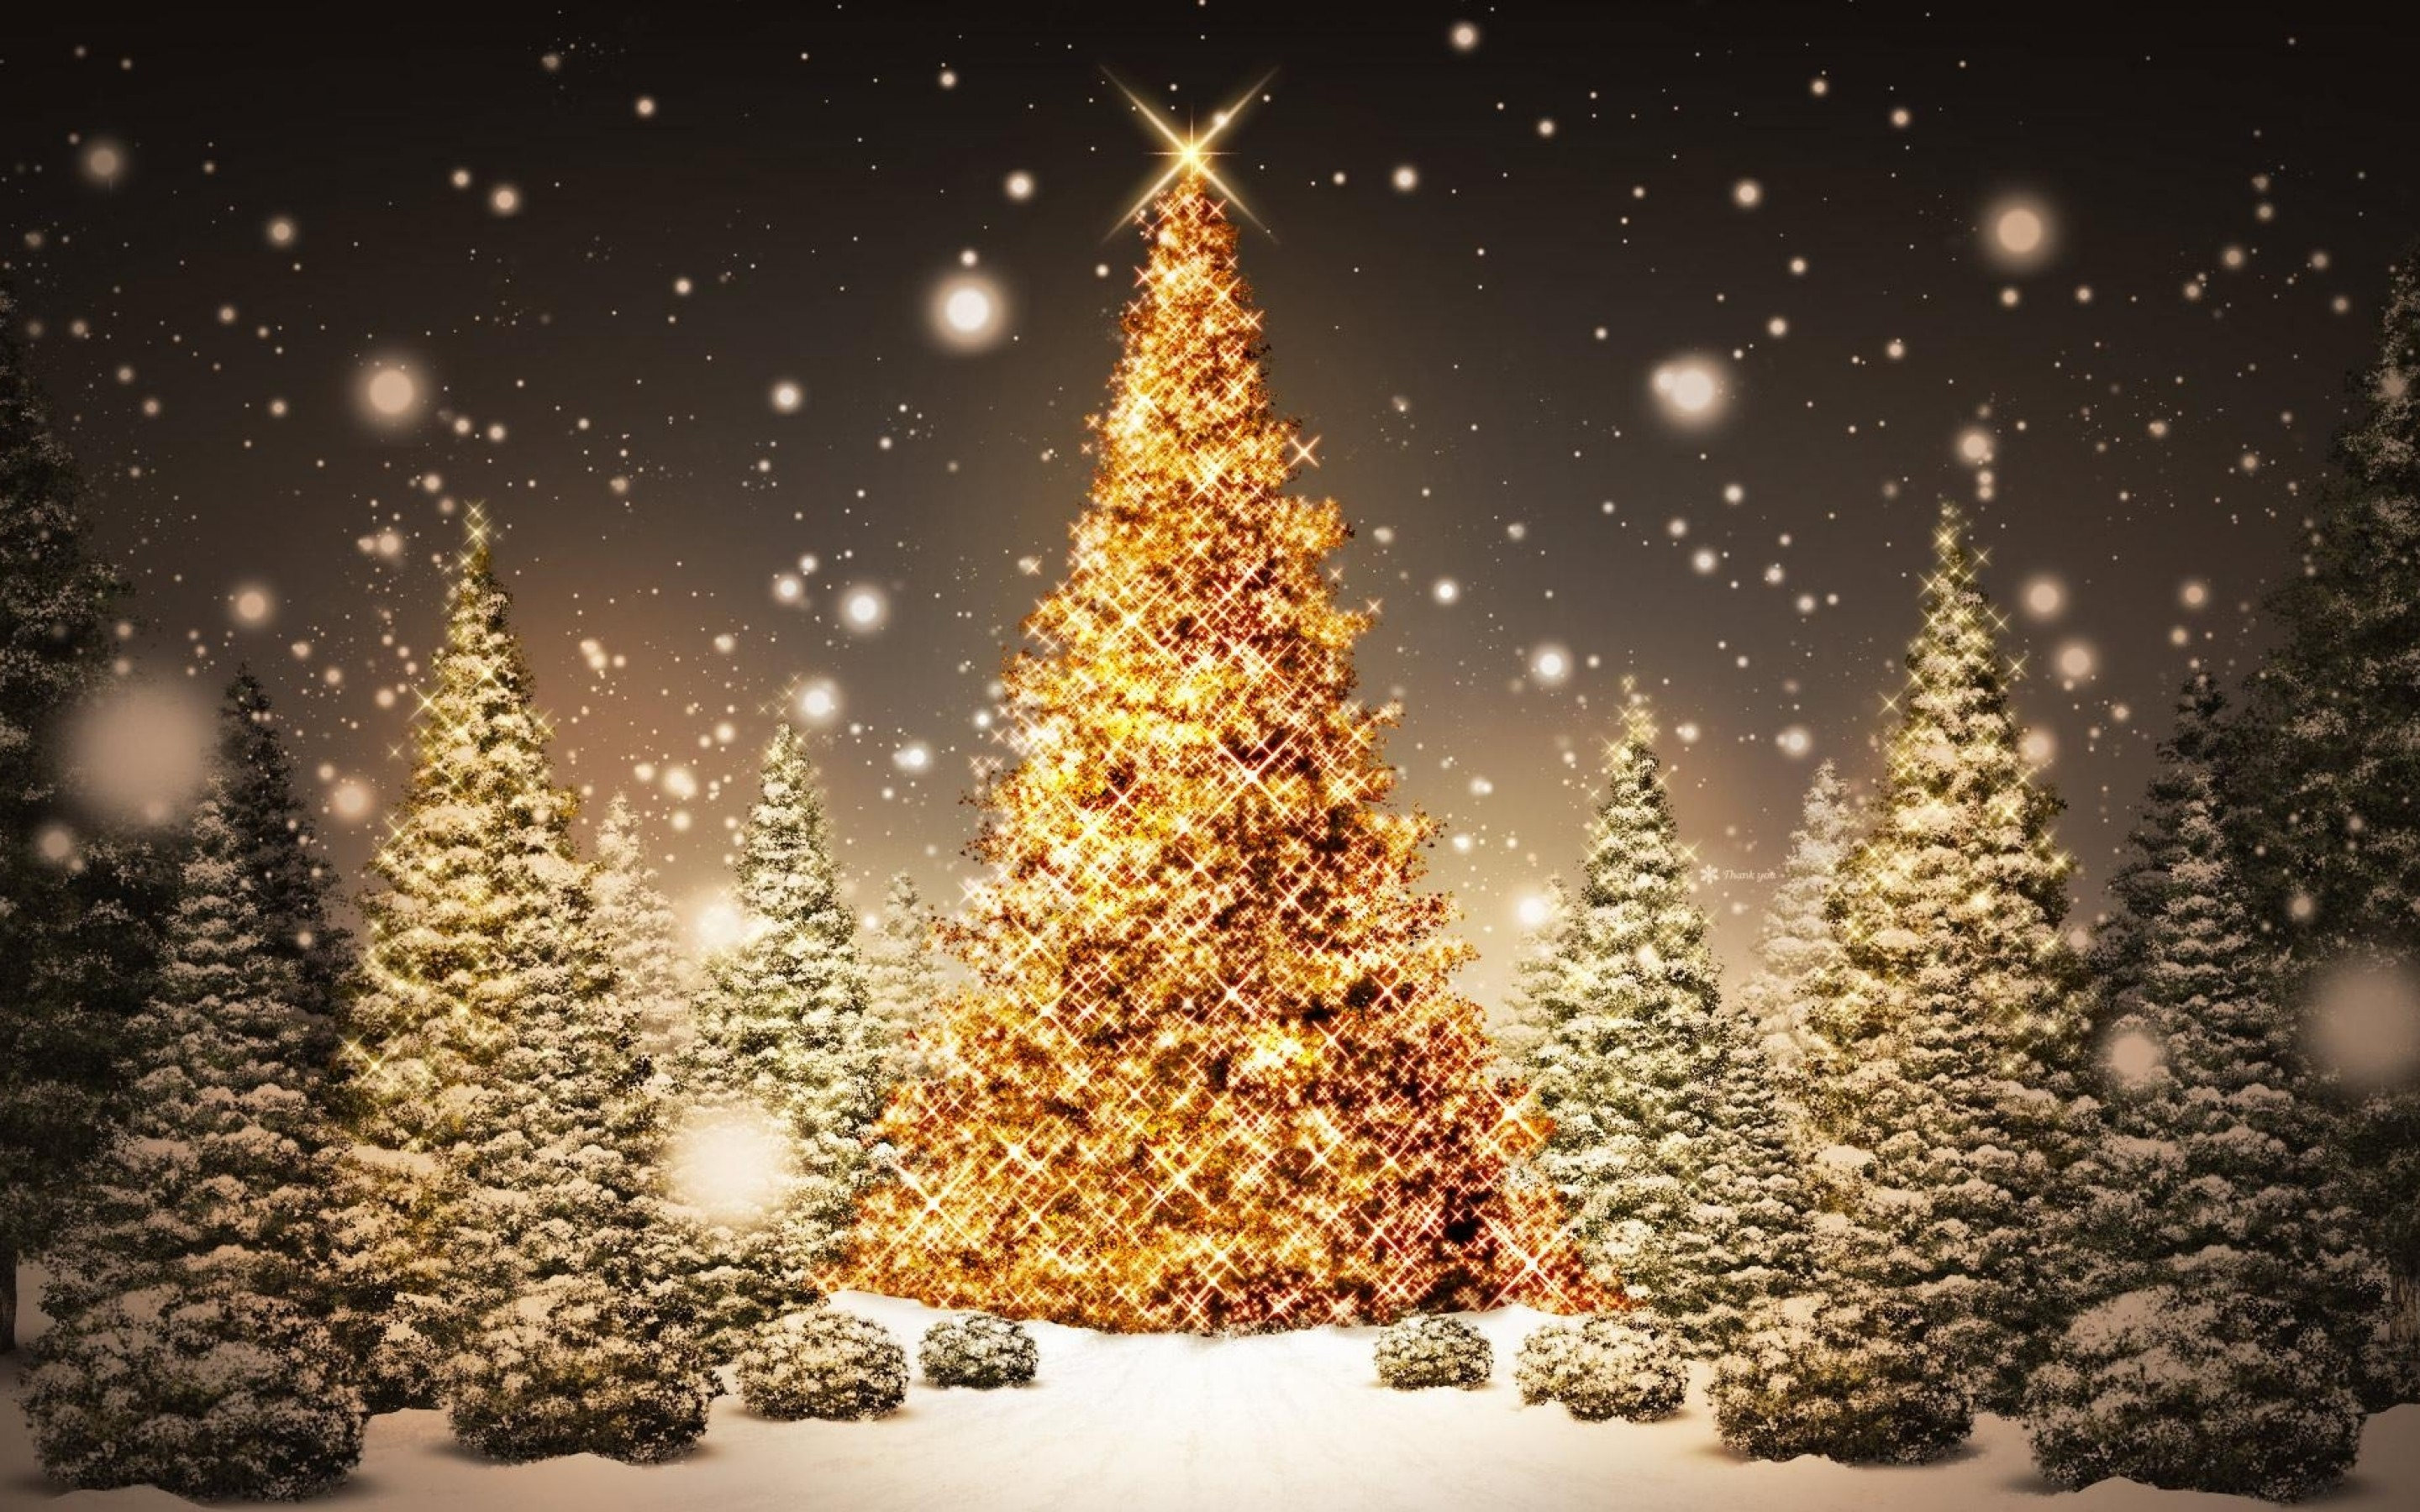 Christmas Wallpaper 25 Super HD Christmas Wallpapers